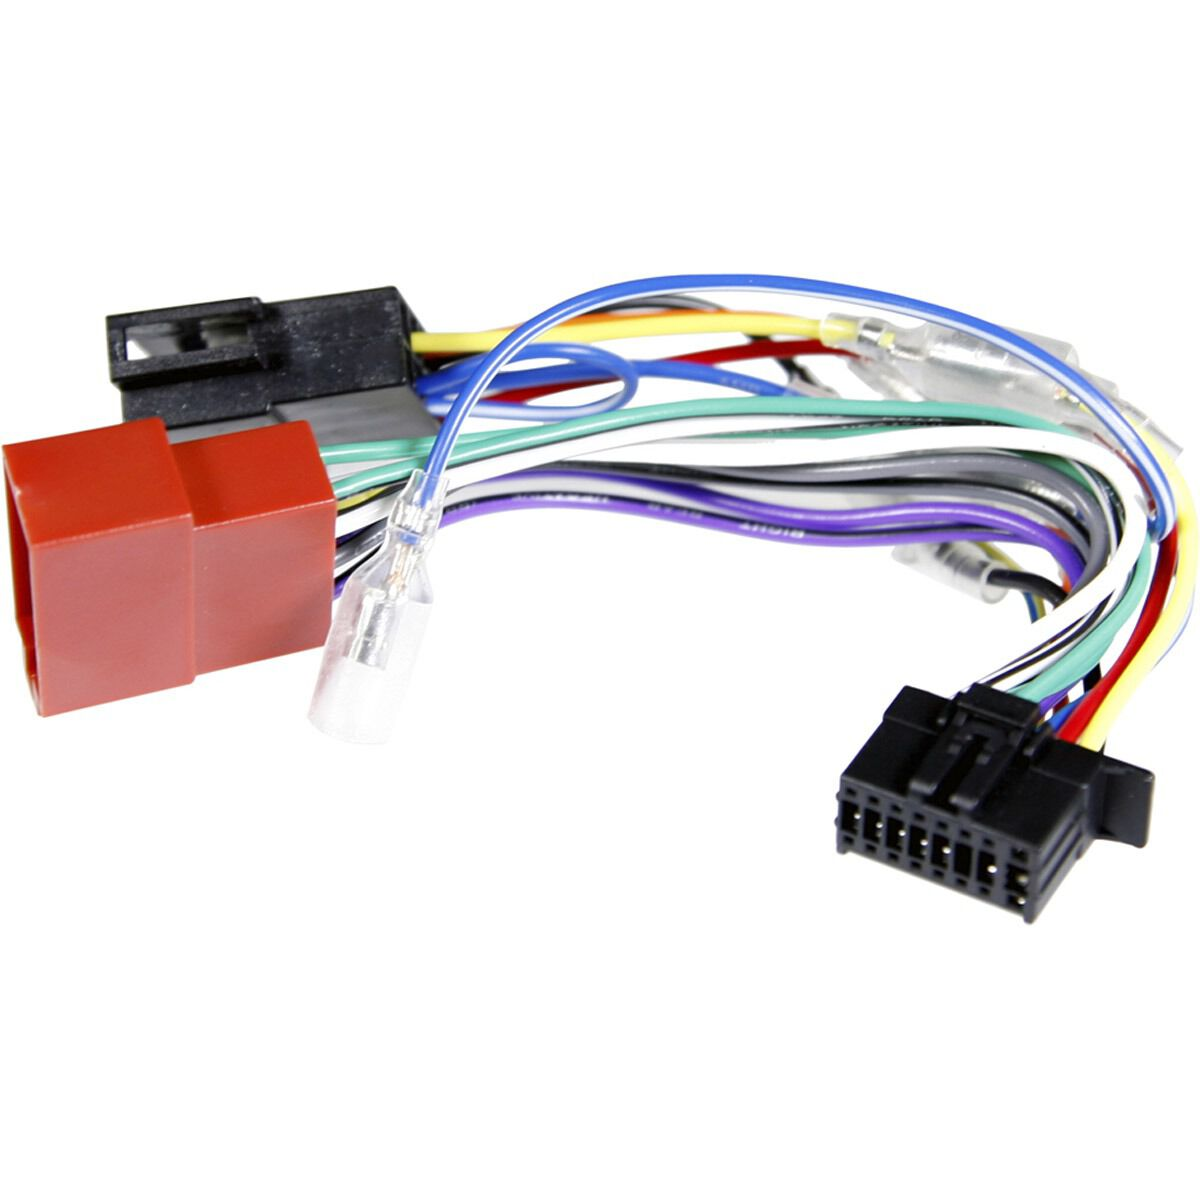 Aerpro Wiring Harness Pioneer Guide And Troubleshooting Of Electrical Australia Colour Code Harnesses Supercheap Auto Rh Supercheapauto Com Au 5200b Avh X2700bs